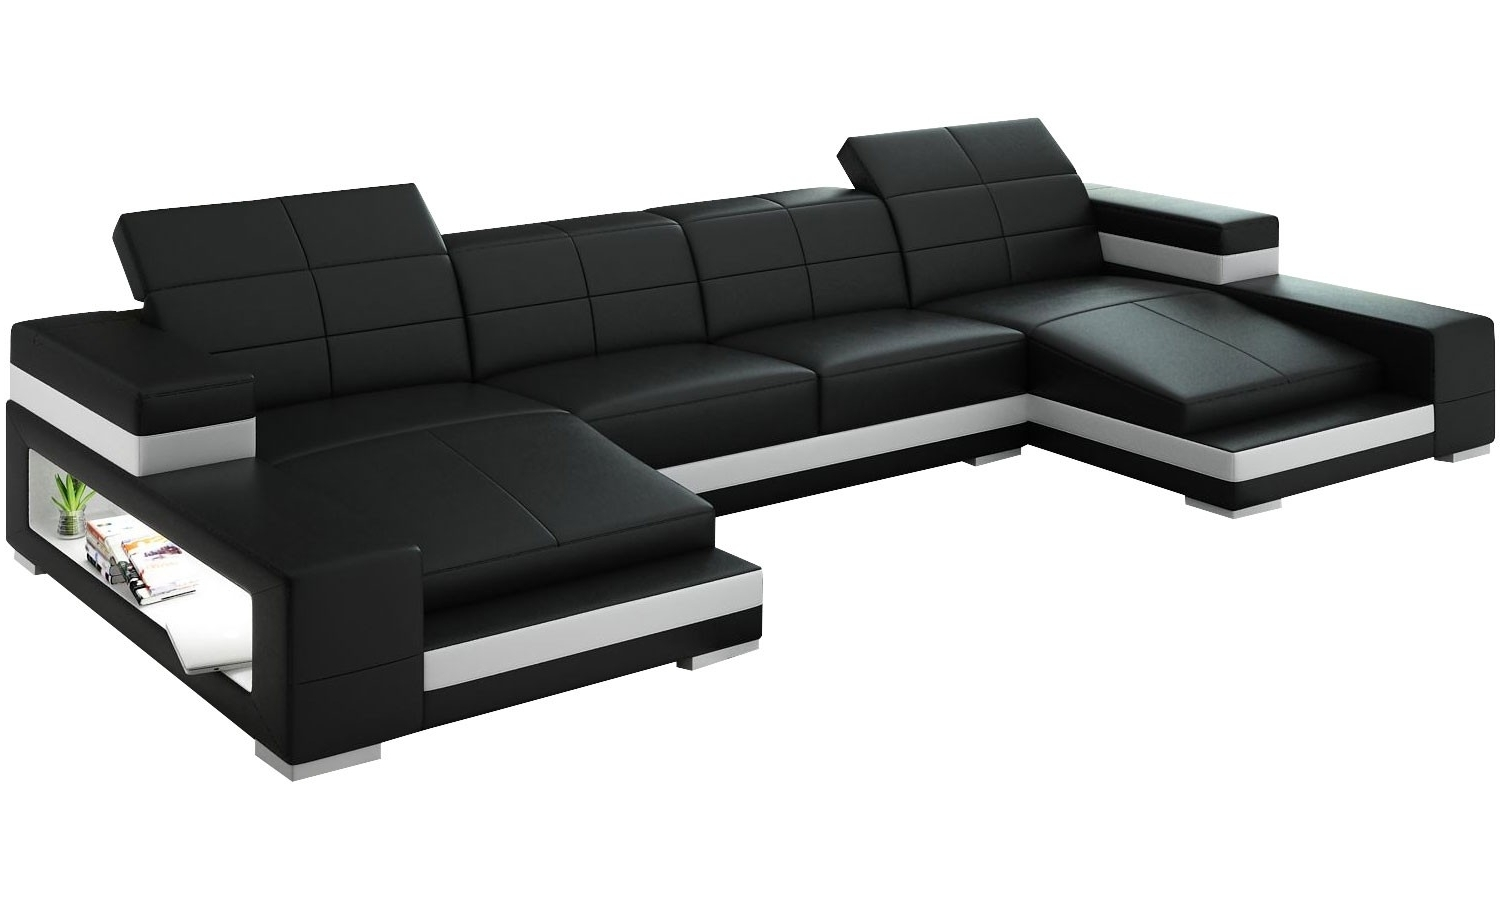 Double Leather Chaise Sectional With Ergonomic Back And Storage In With Regard To Preferred Dual Chaise Sectionals (View 5 of 15)